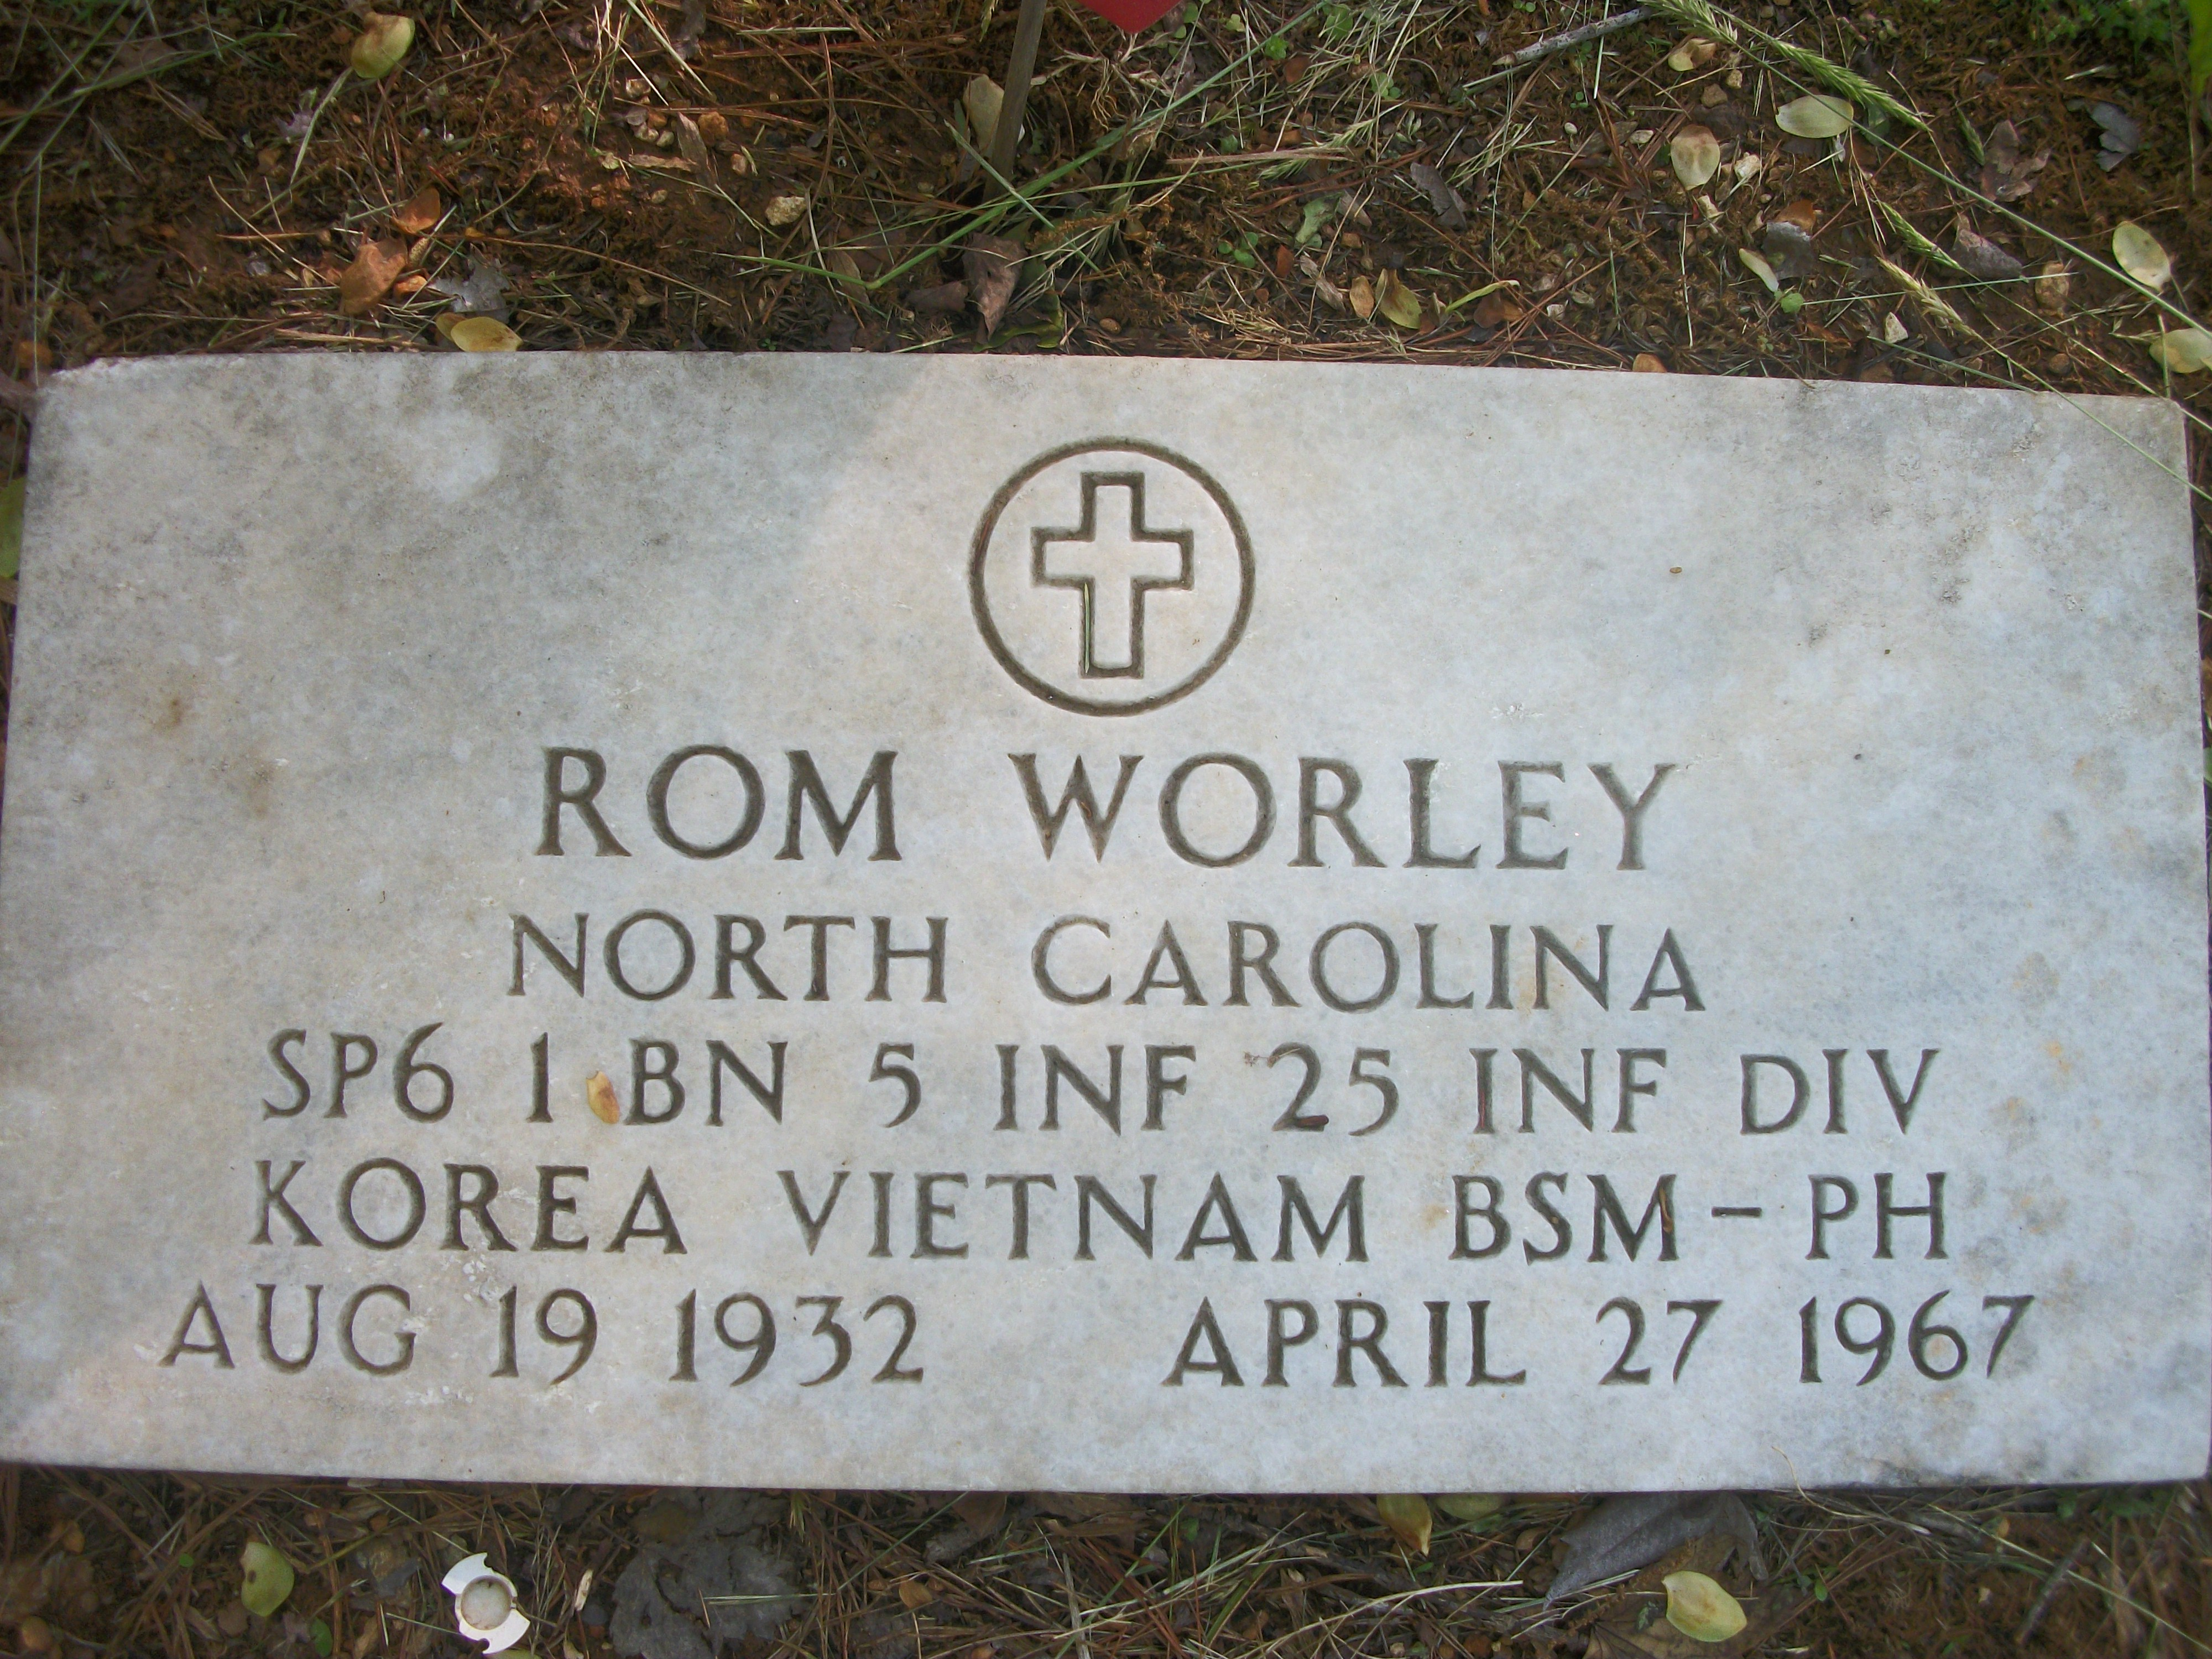 Spec Rom Worley